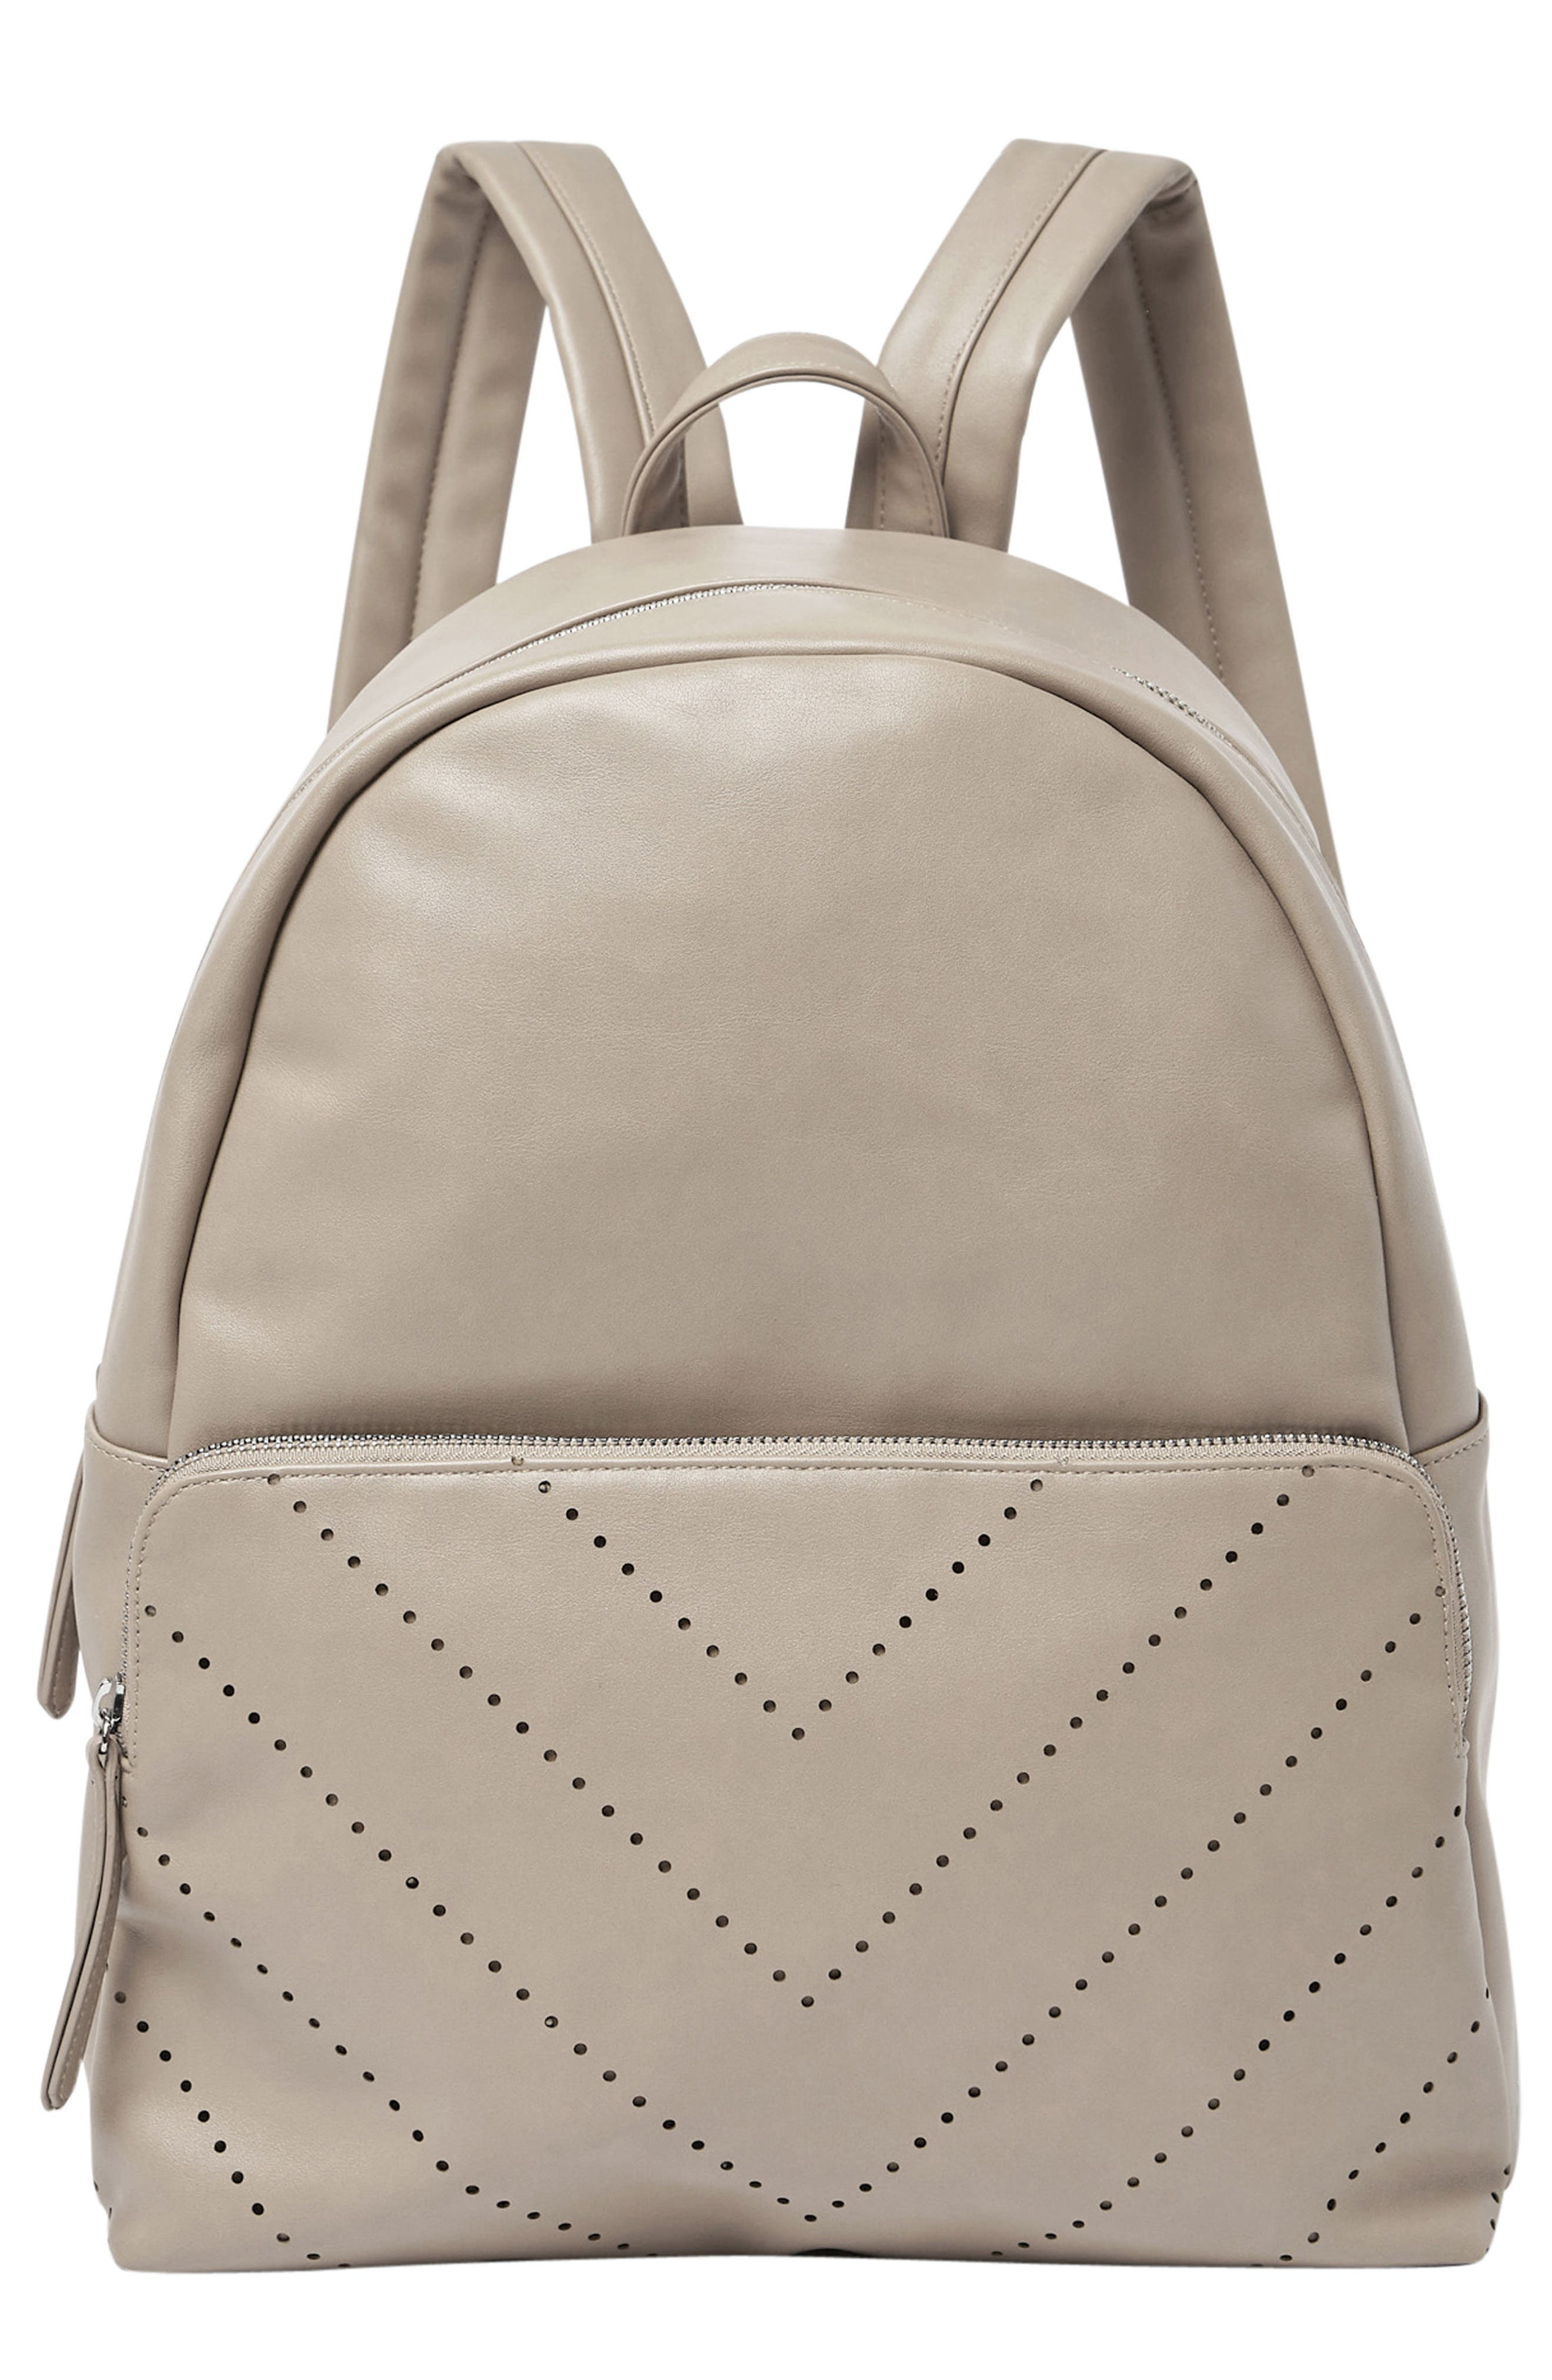 Urban Originals The Free Vegan Leather Backpack